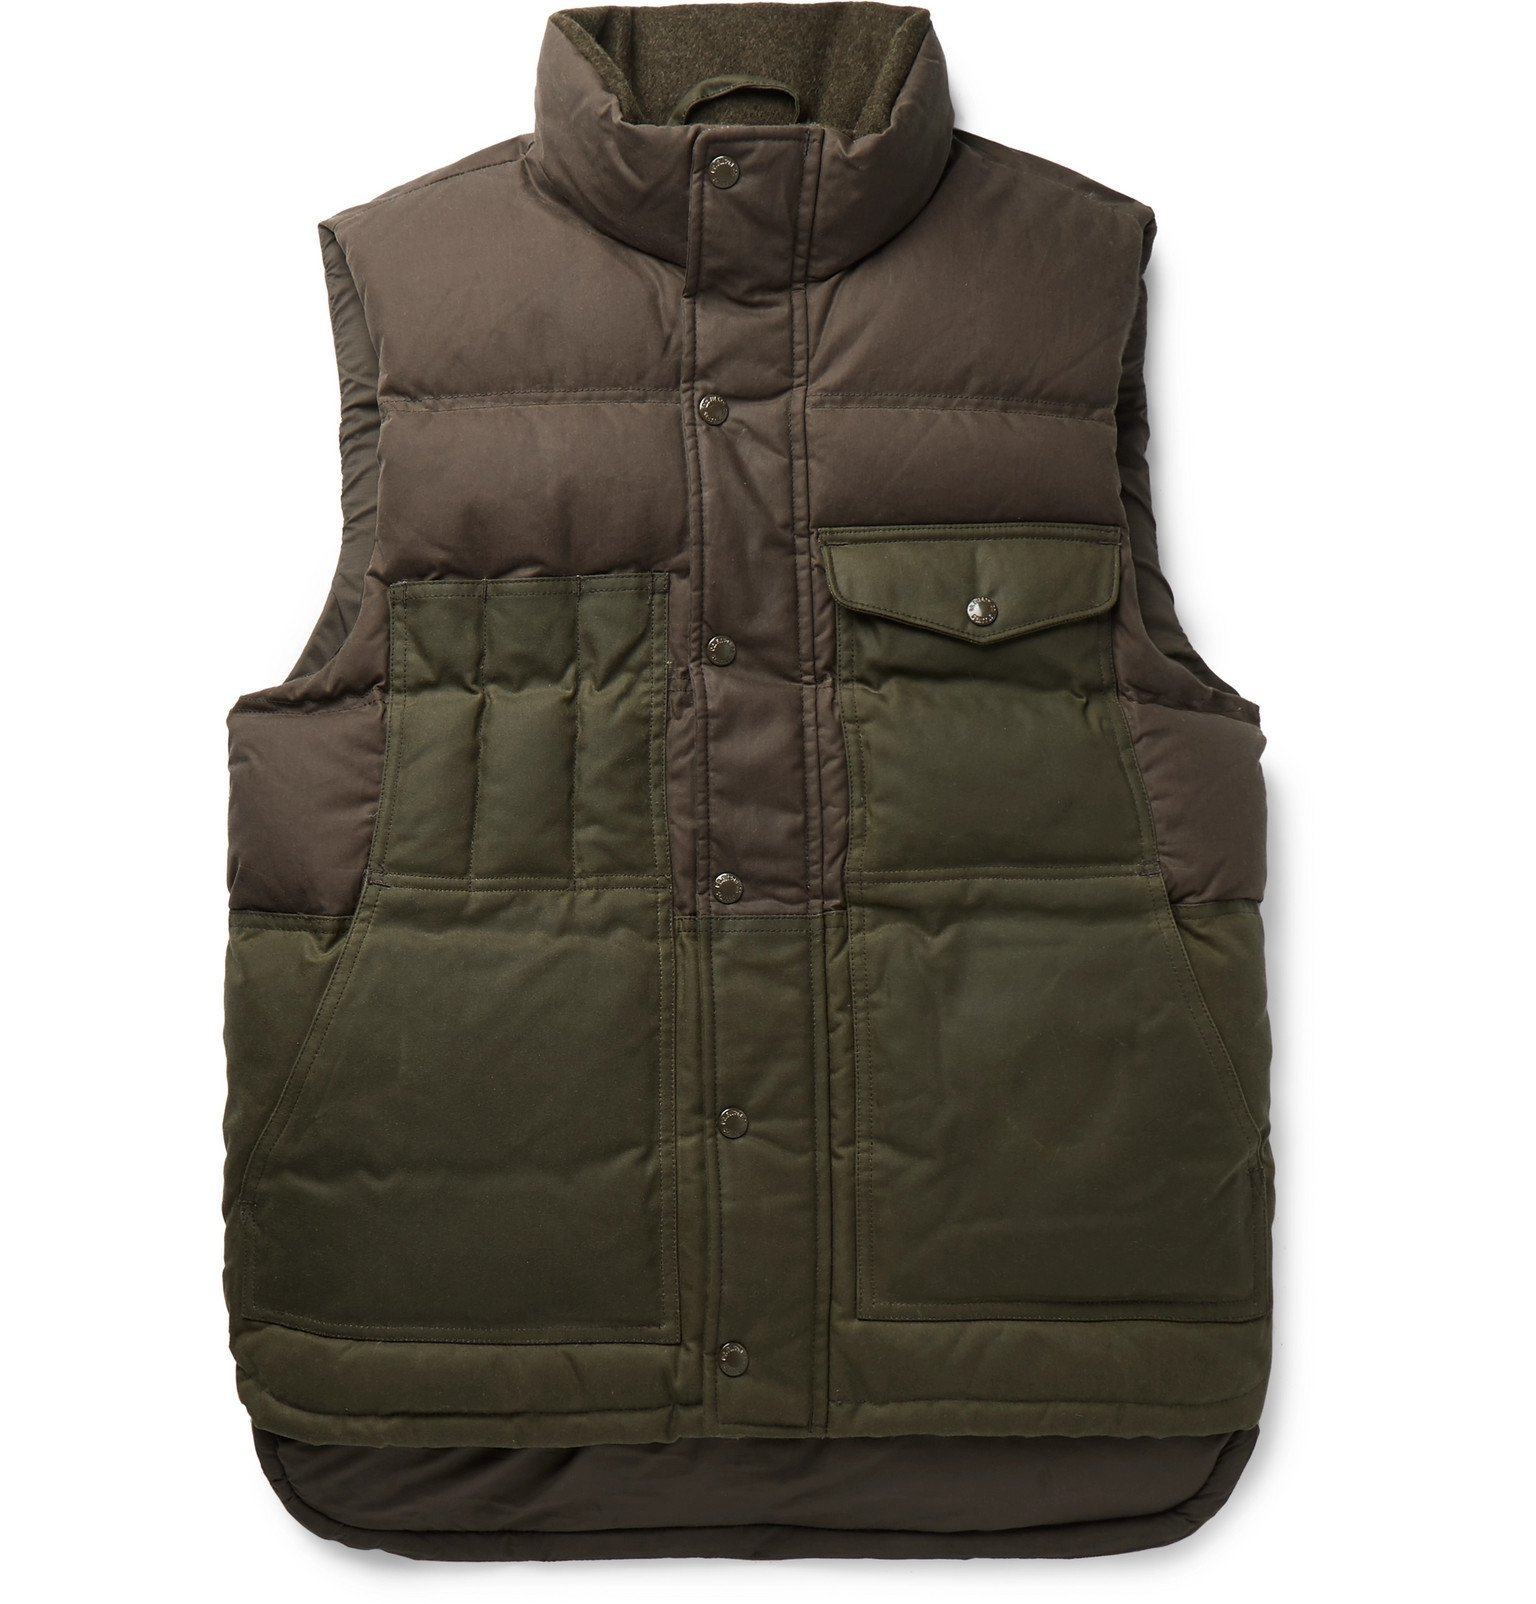 Filson - Cruiser Two-Tone Quilted Cotton Down Gilet - Green